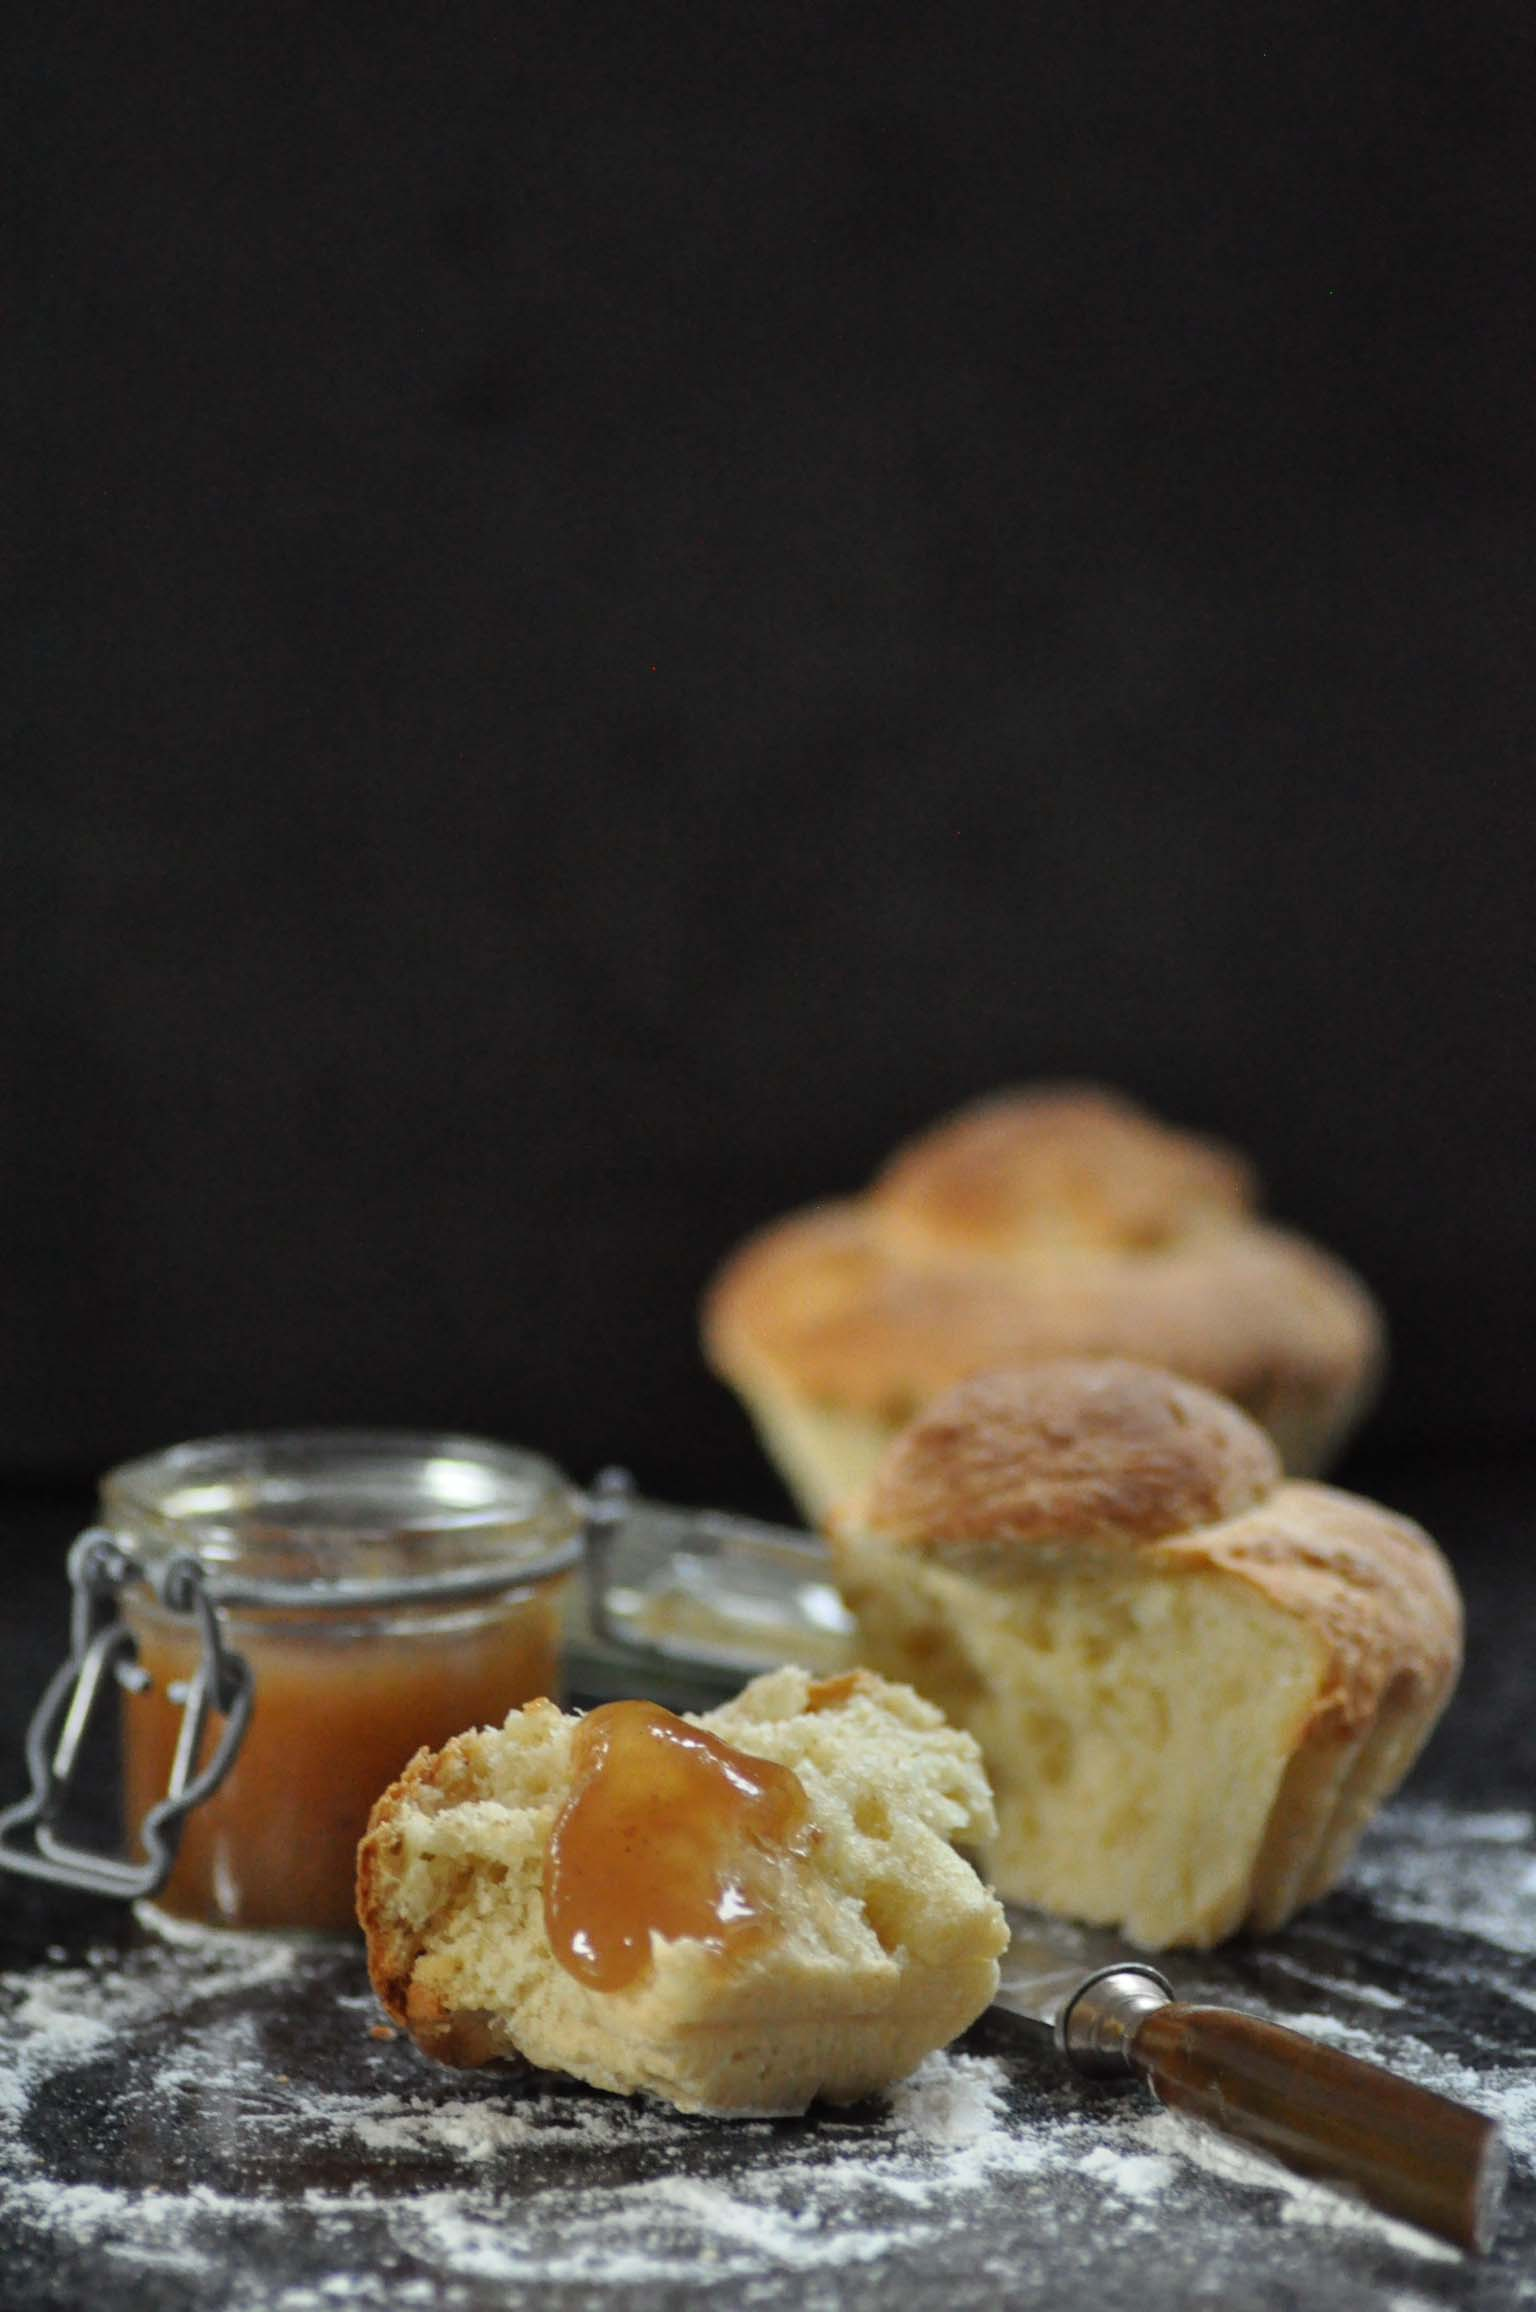 pear and chestnut jam_bearbeitet-1